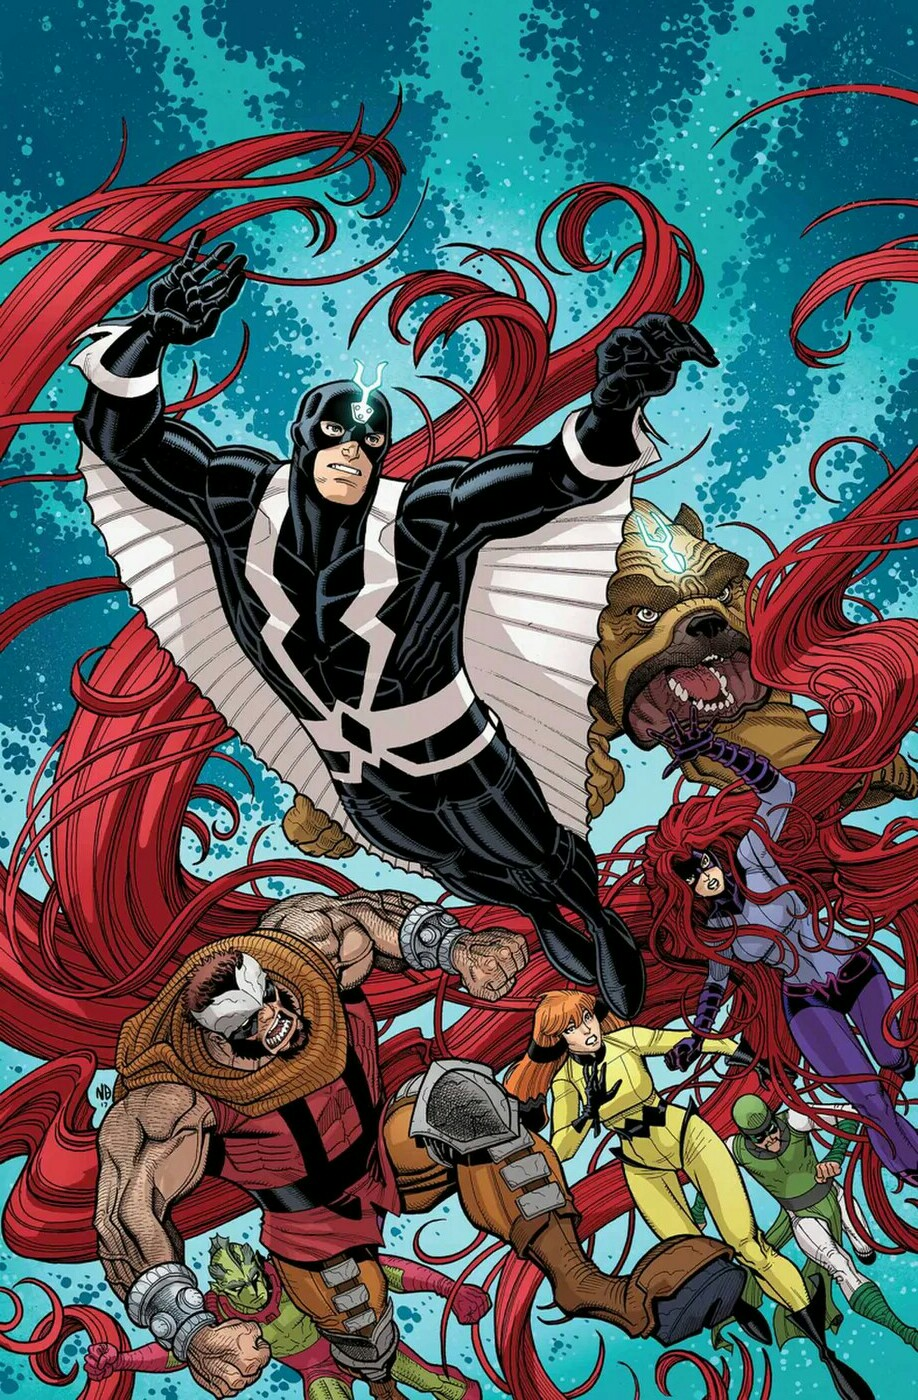 Inhumans Once and Future Kings Vol 1 5 Textless.jpg